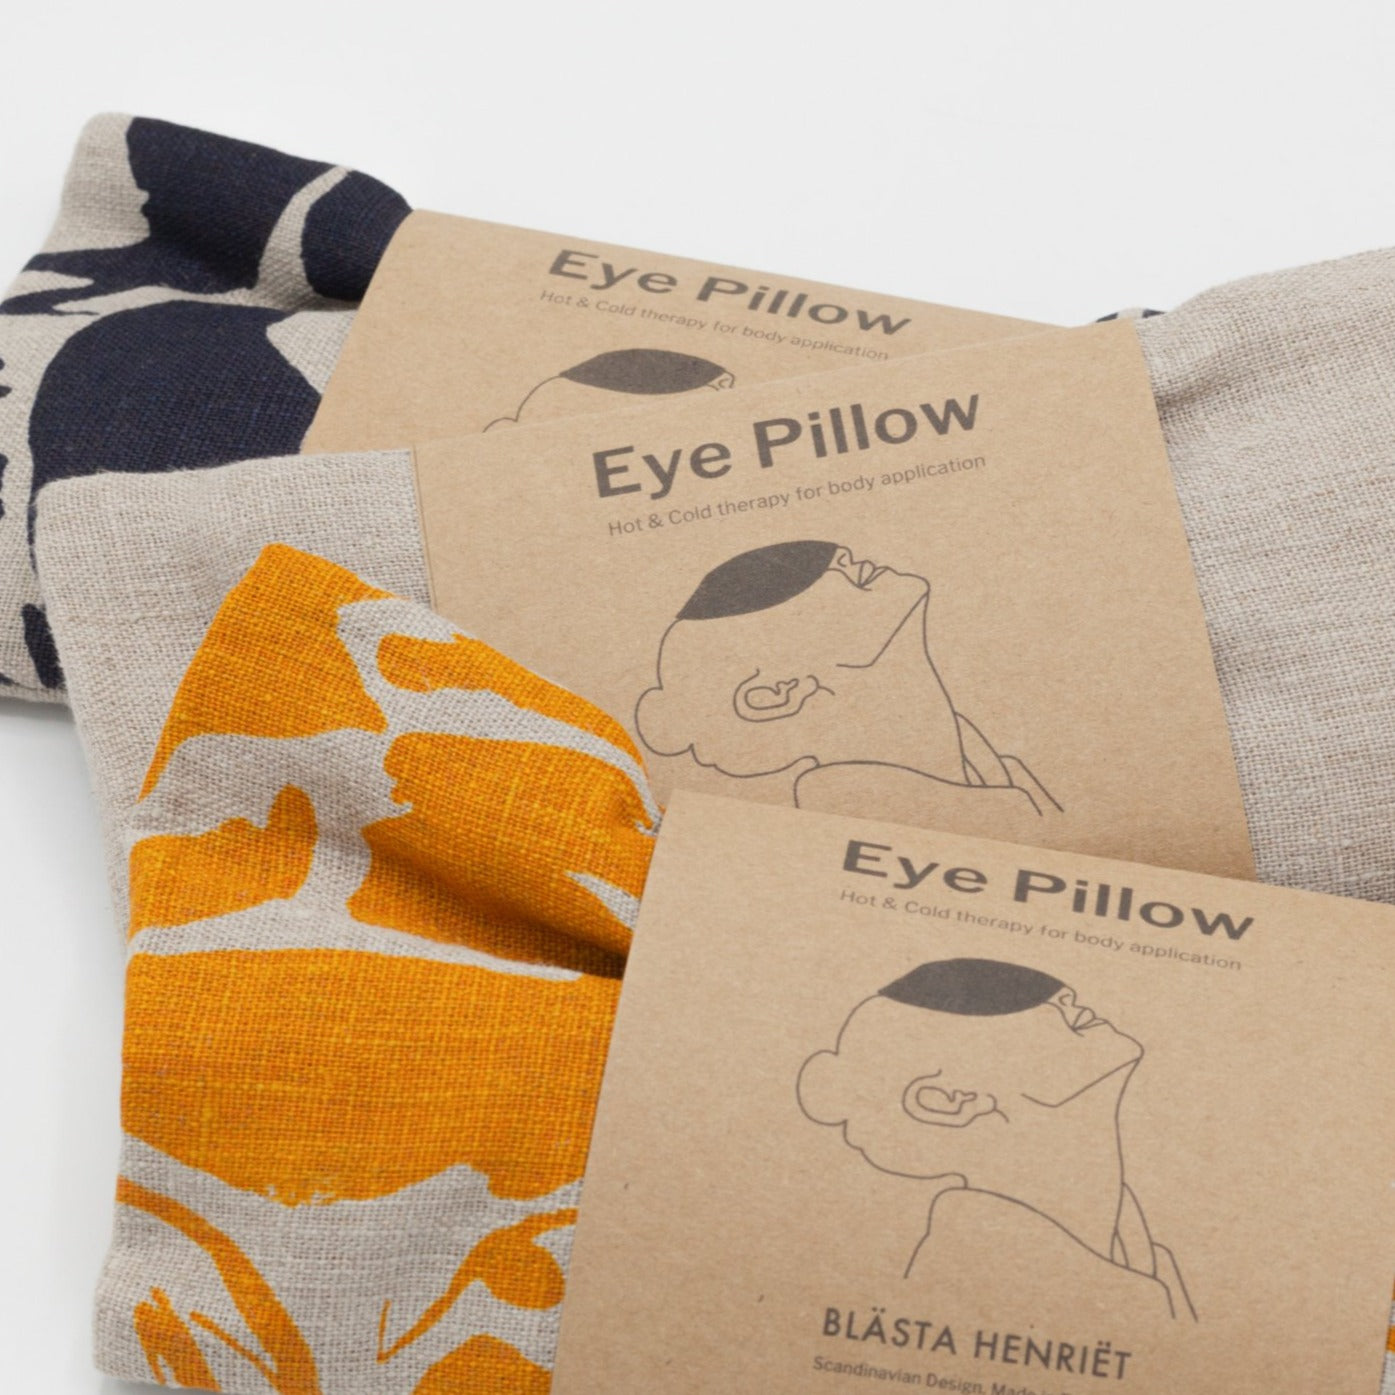 Blästa Henriët Linen Eye Pillow